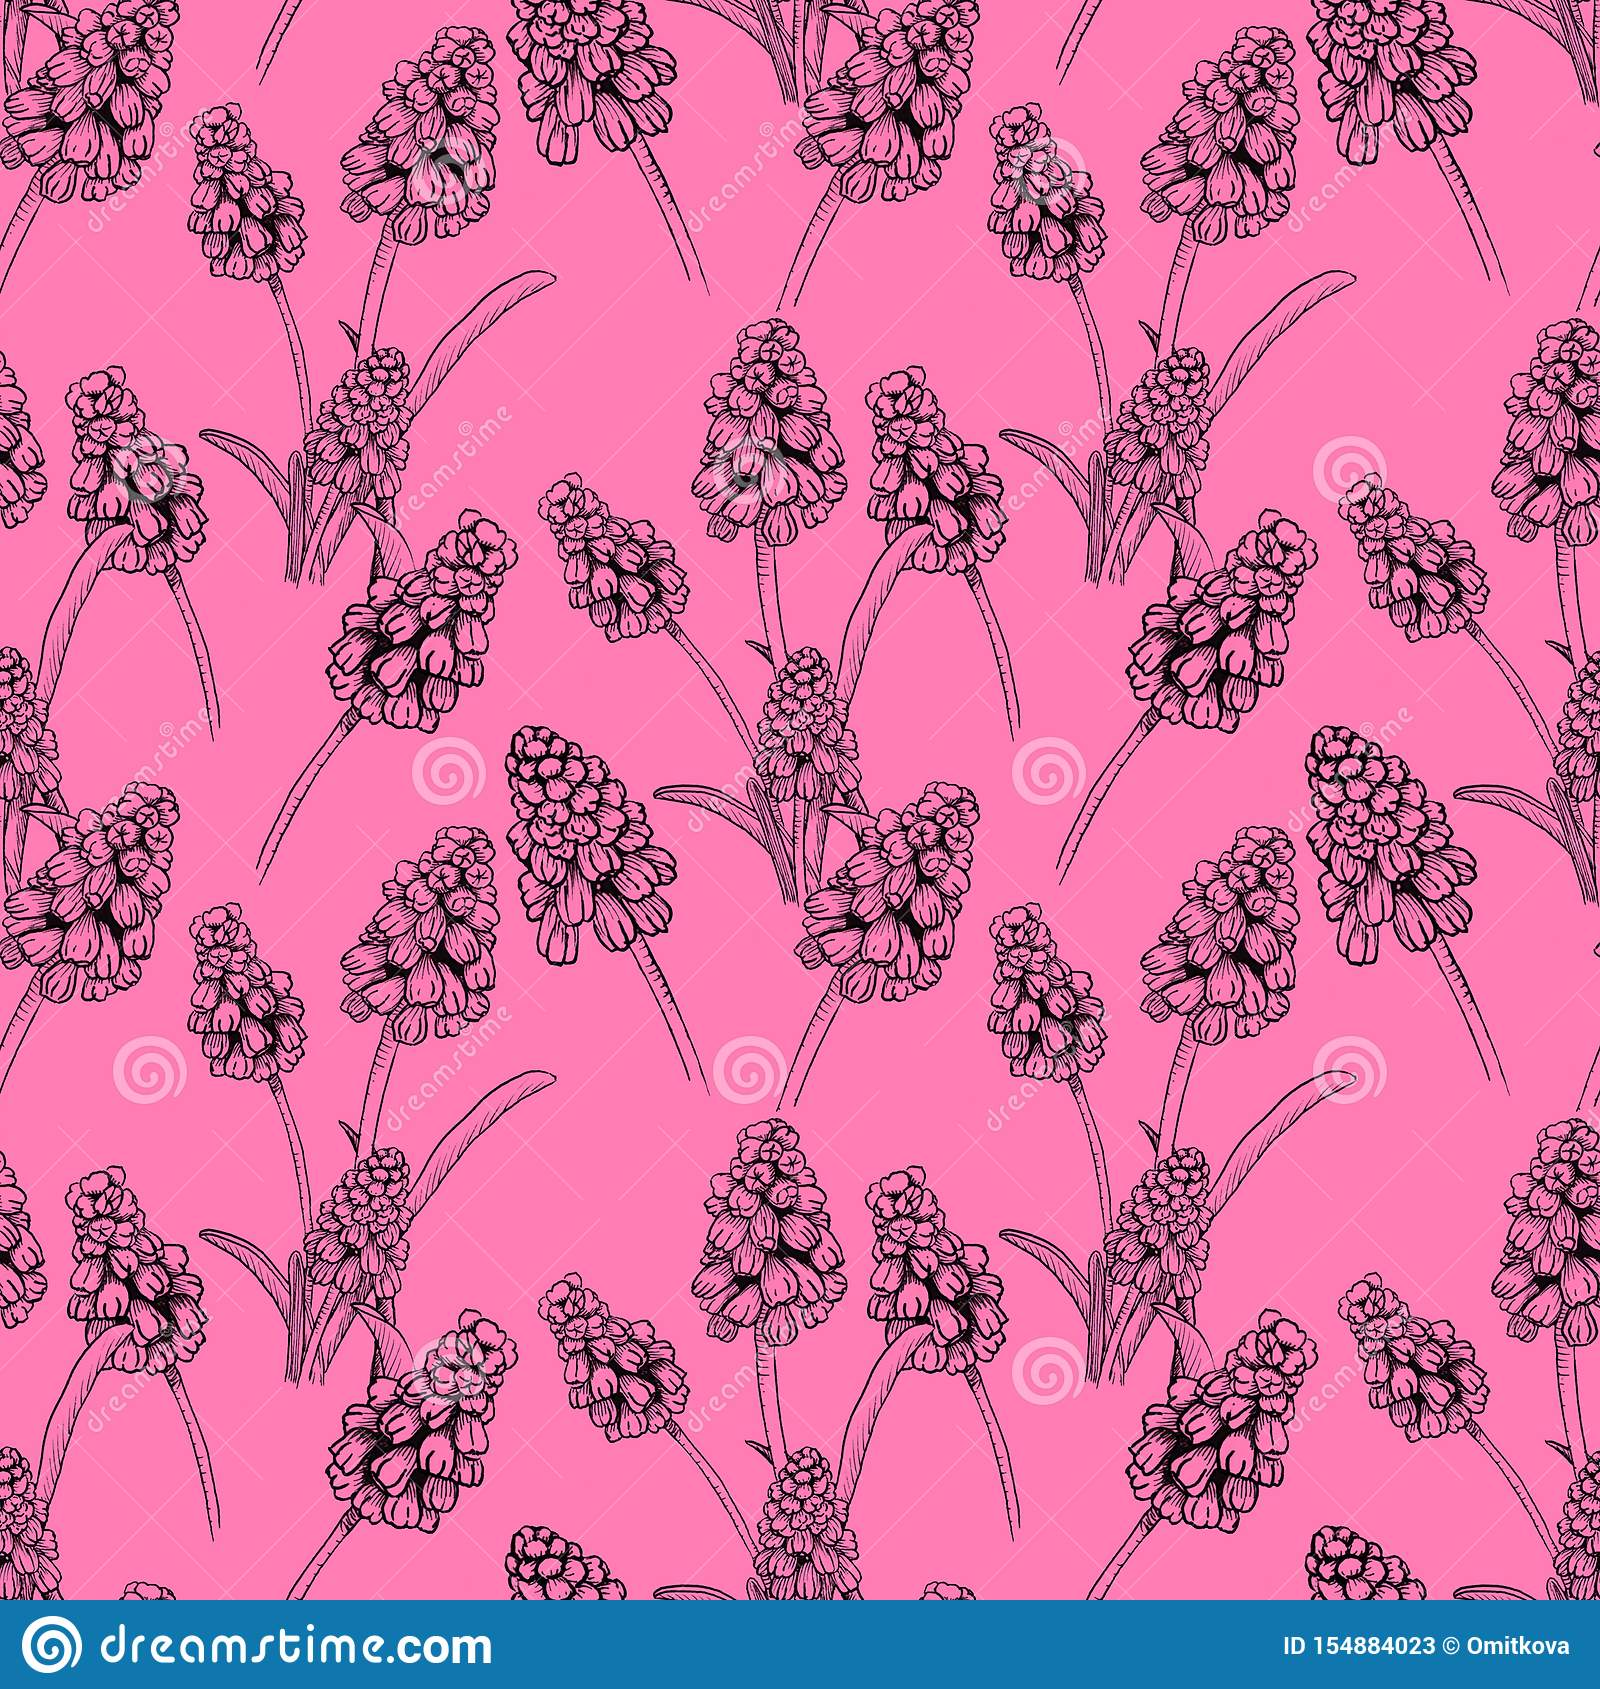 Seamless pattern with realistically painted ink Muscari flowers. Hand drawn illustration on pink background modified to